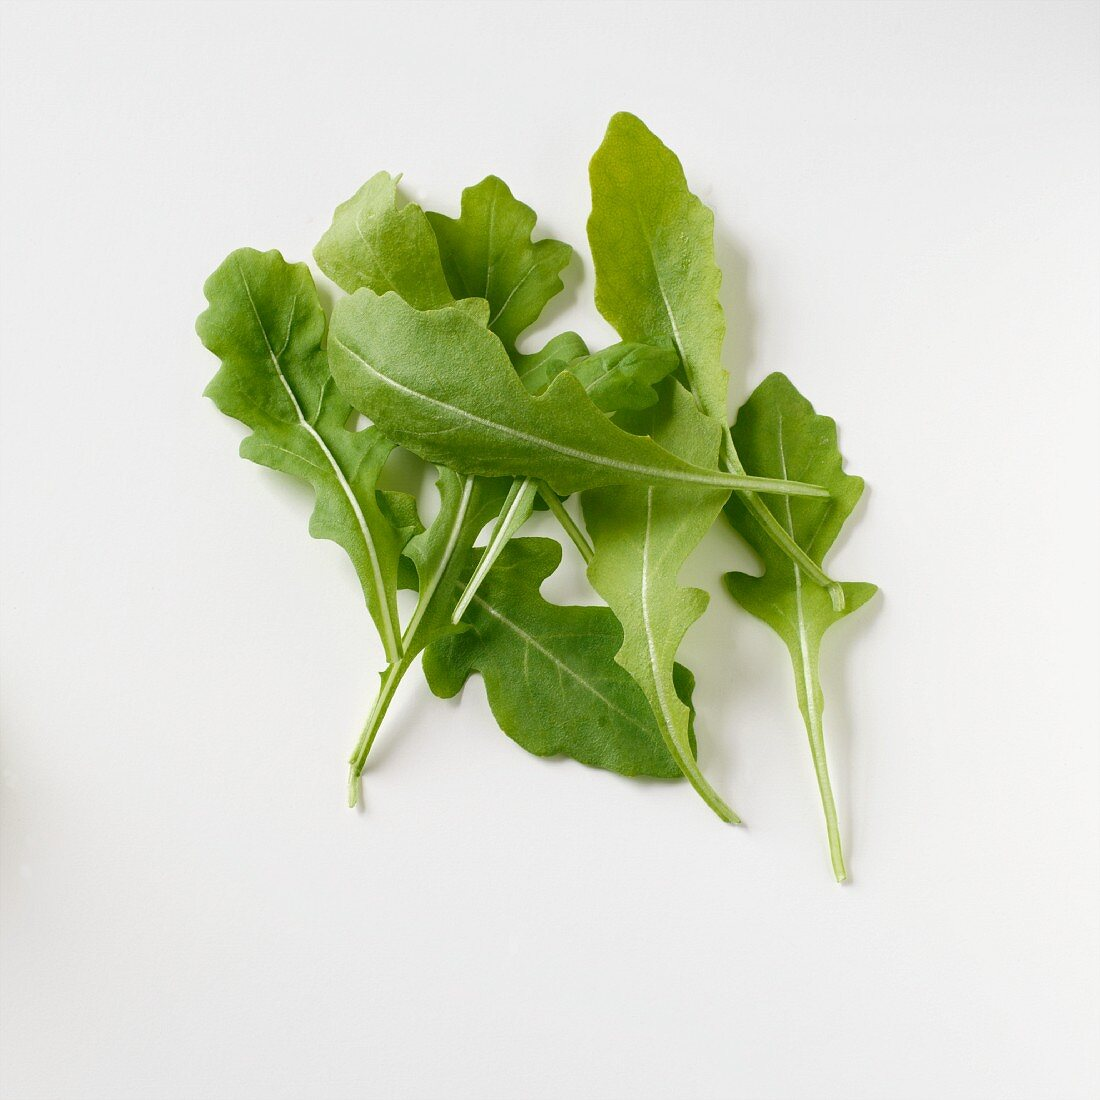 Rocket leaves seen from above